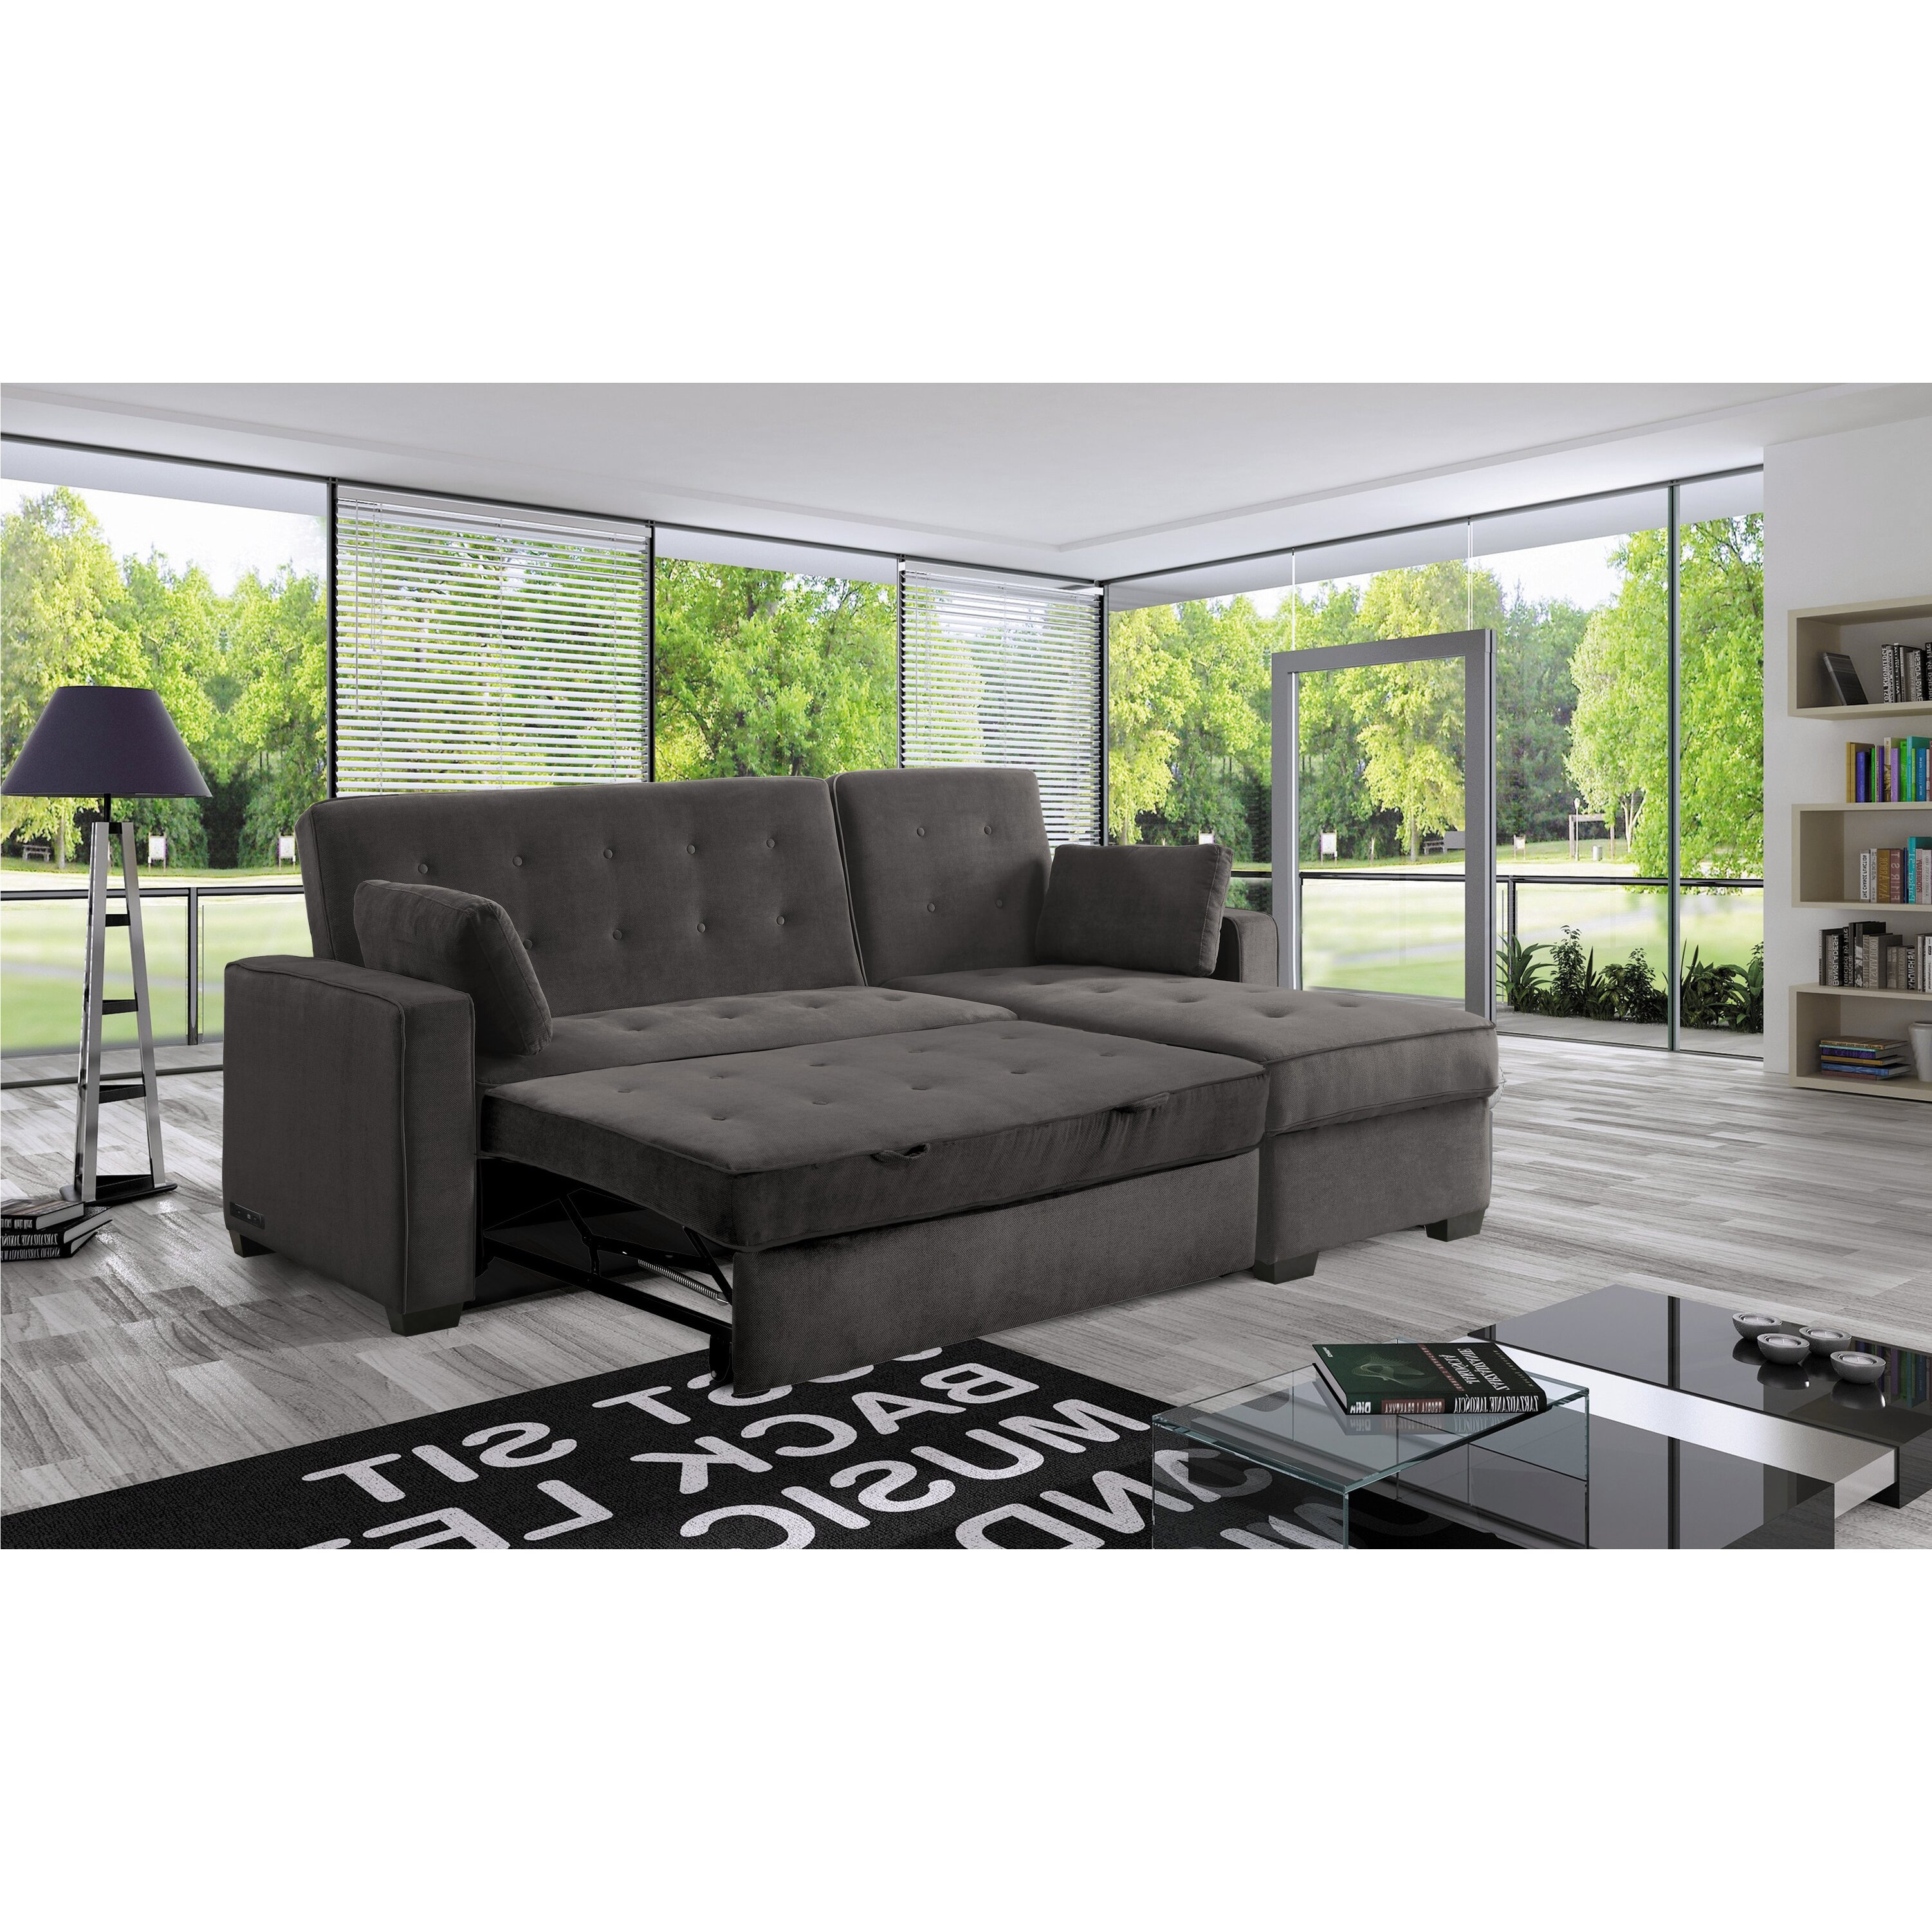 serta futons lancaster dream chaise sectional wayfair. Black Bedroom Furniture Sets. Home Design Ideas